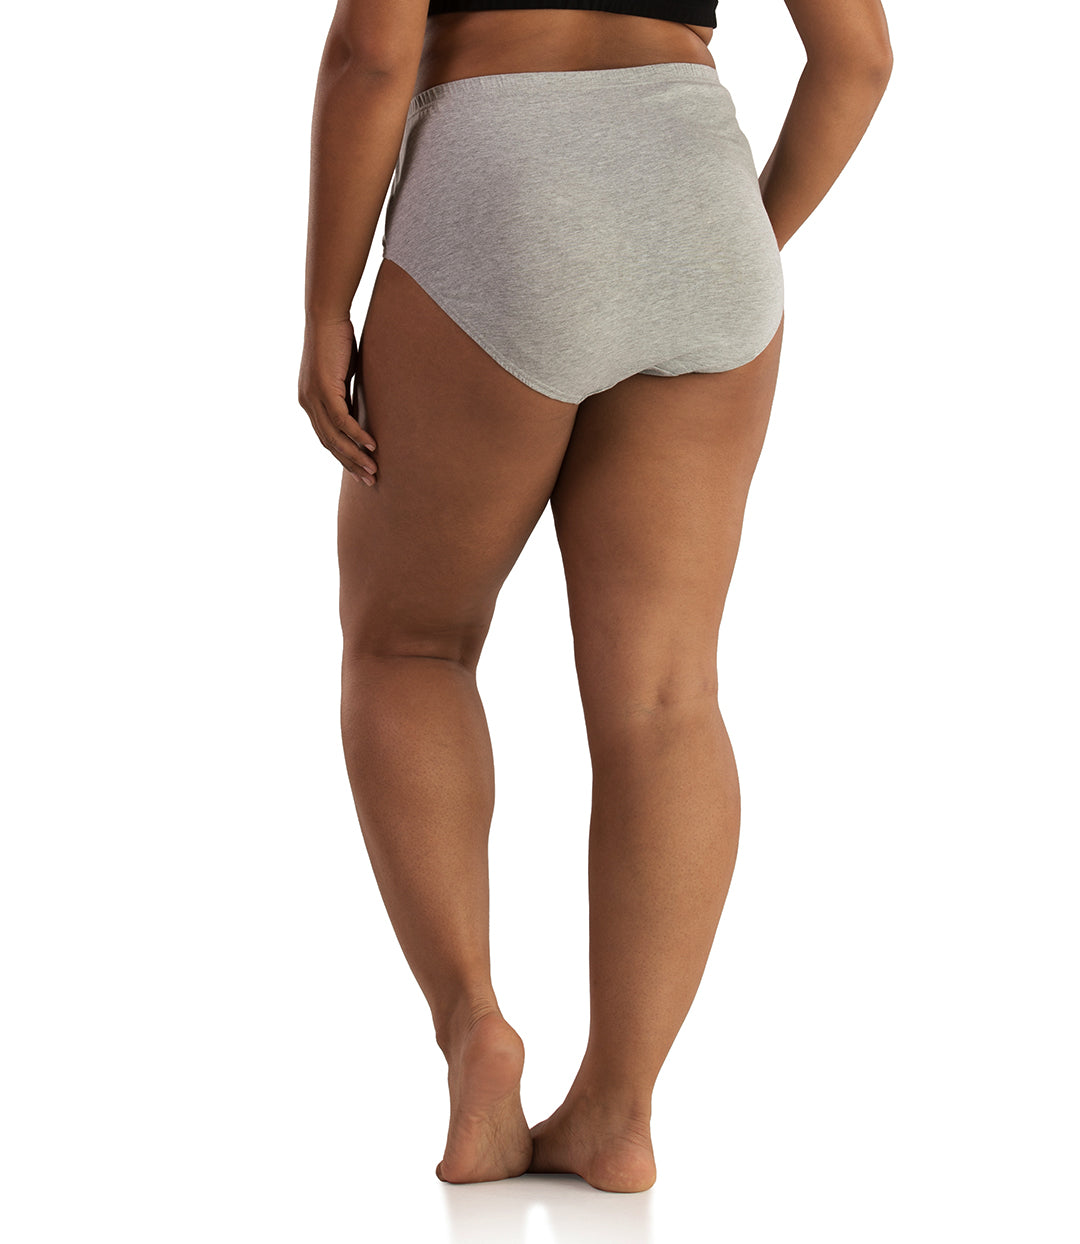 Junowear Cotton Stretch Classic Brief-Plus Size Underwear & Intimates-Hop Wo Trading Co Ltd-1X-GREY-JunoActive